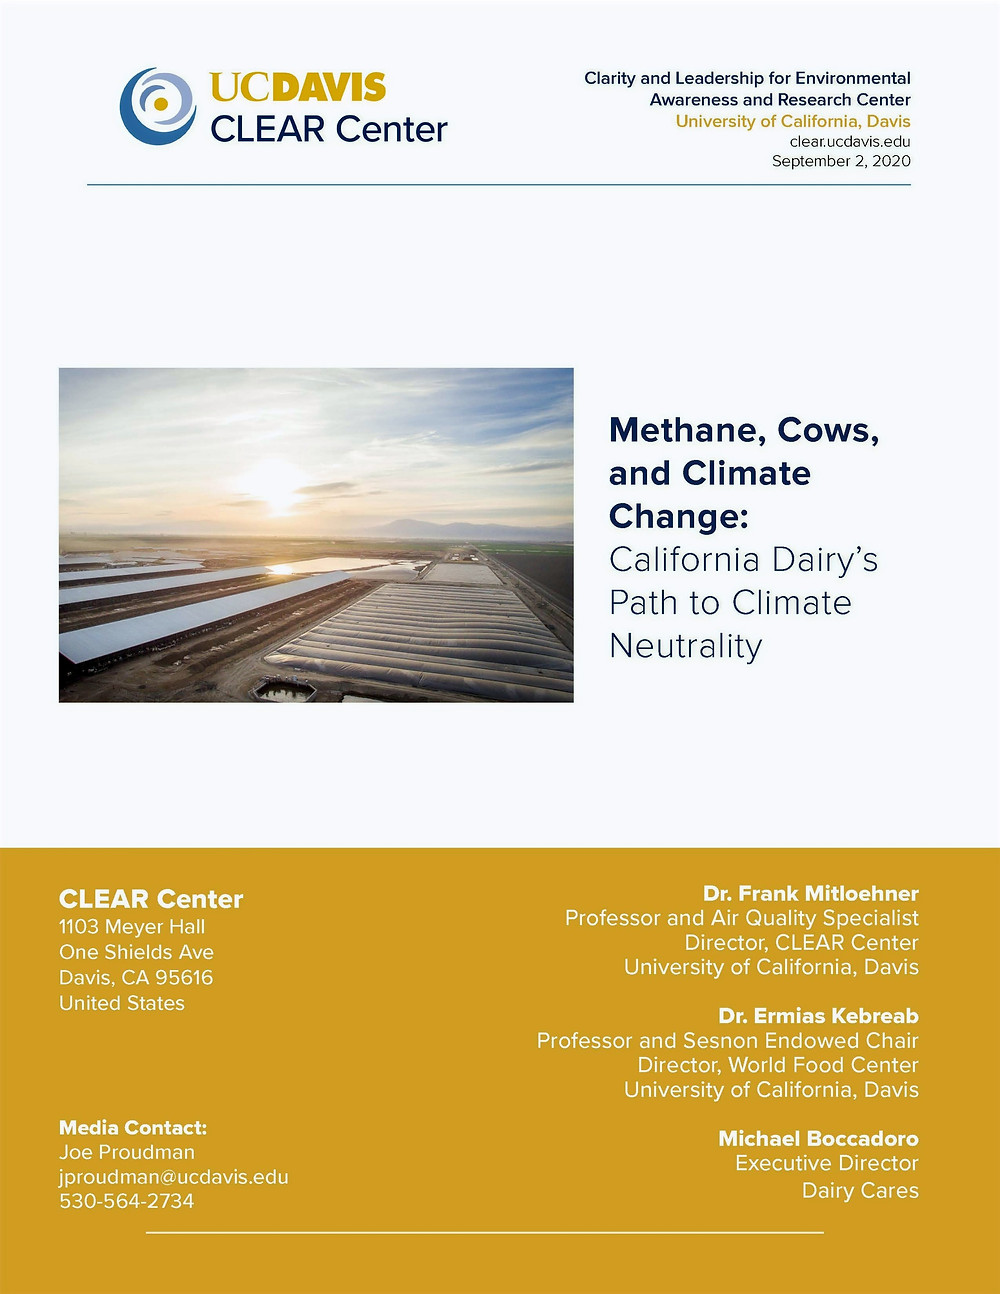 White paper about methane, cows, and climate change